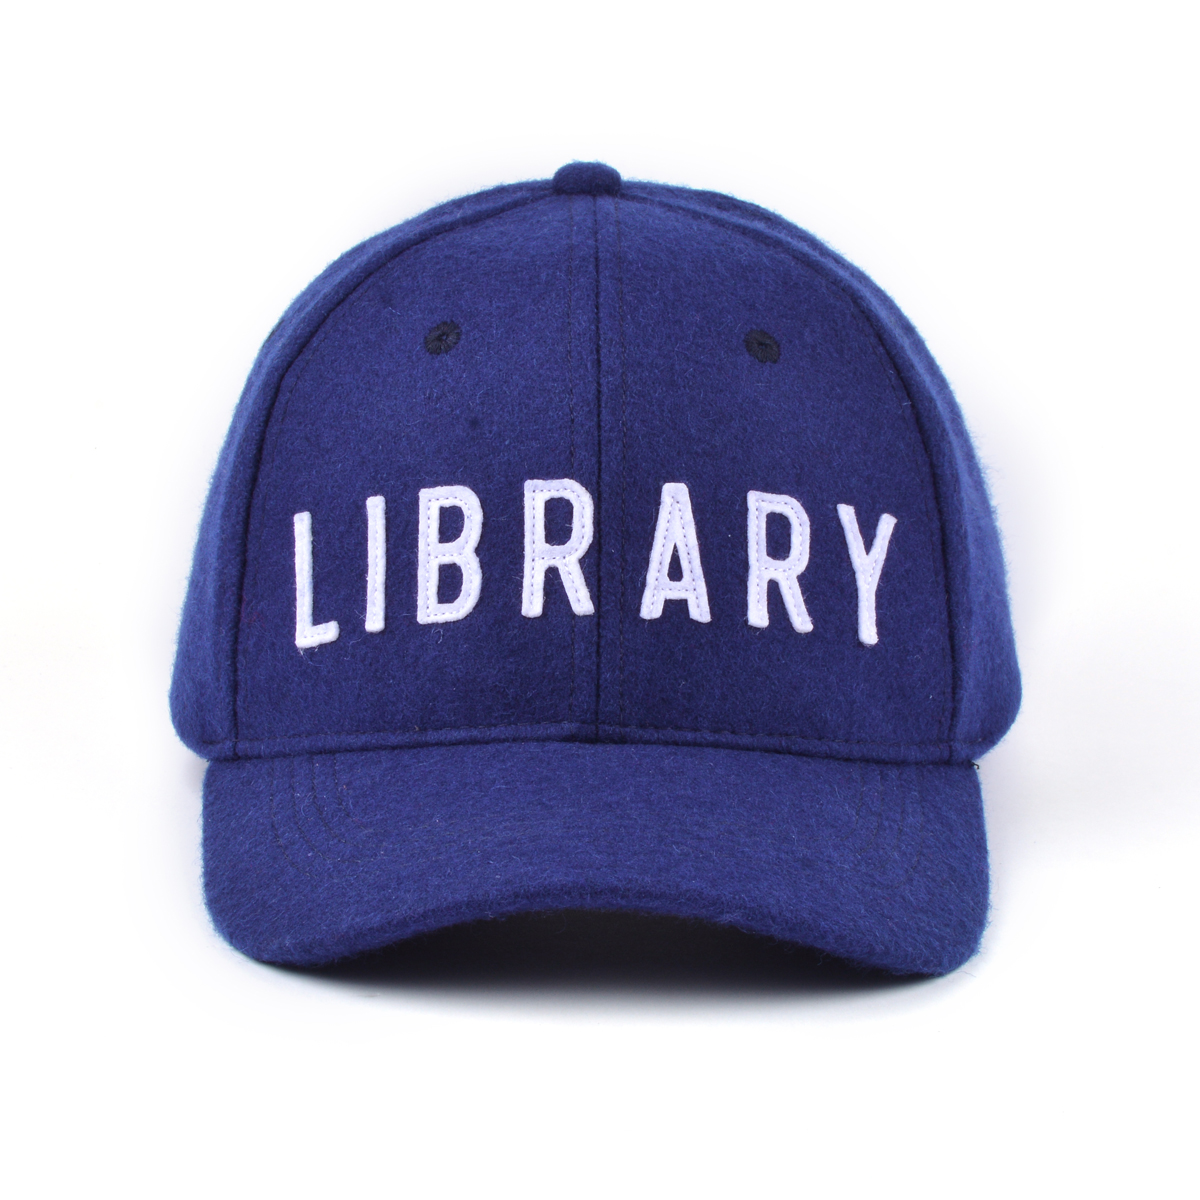 Library Hat Front.JPG